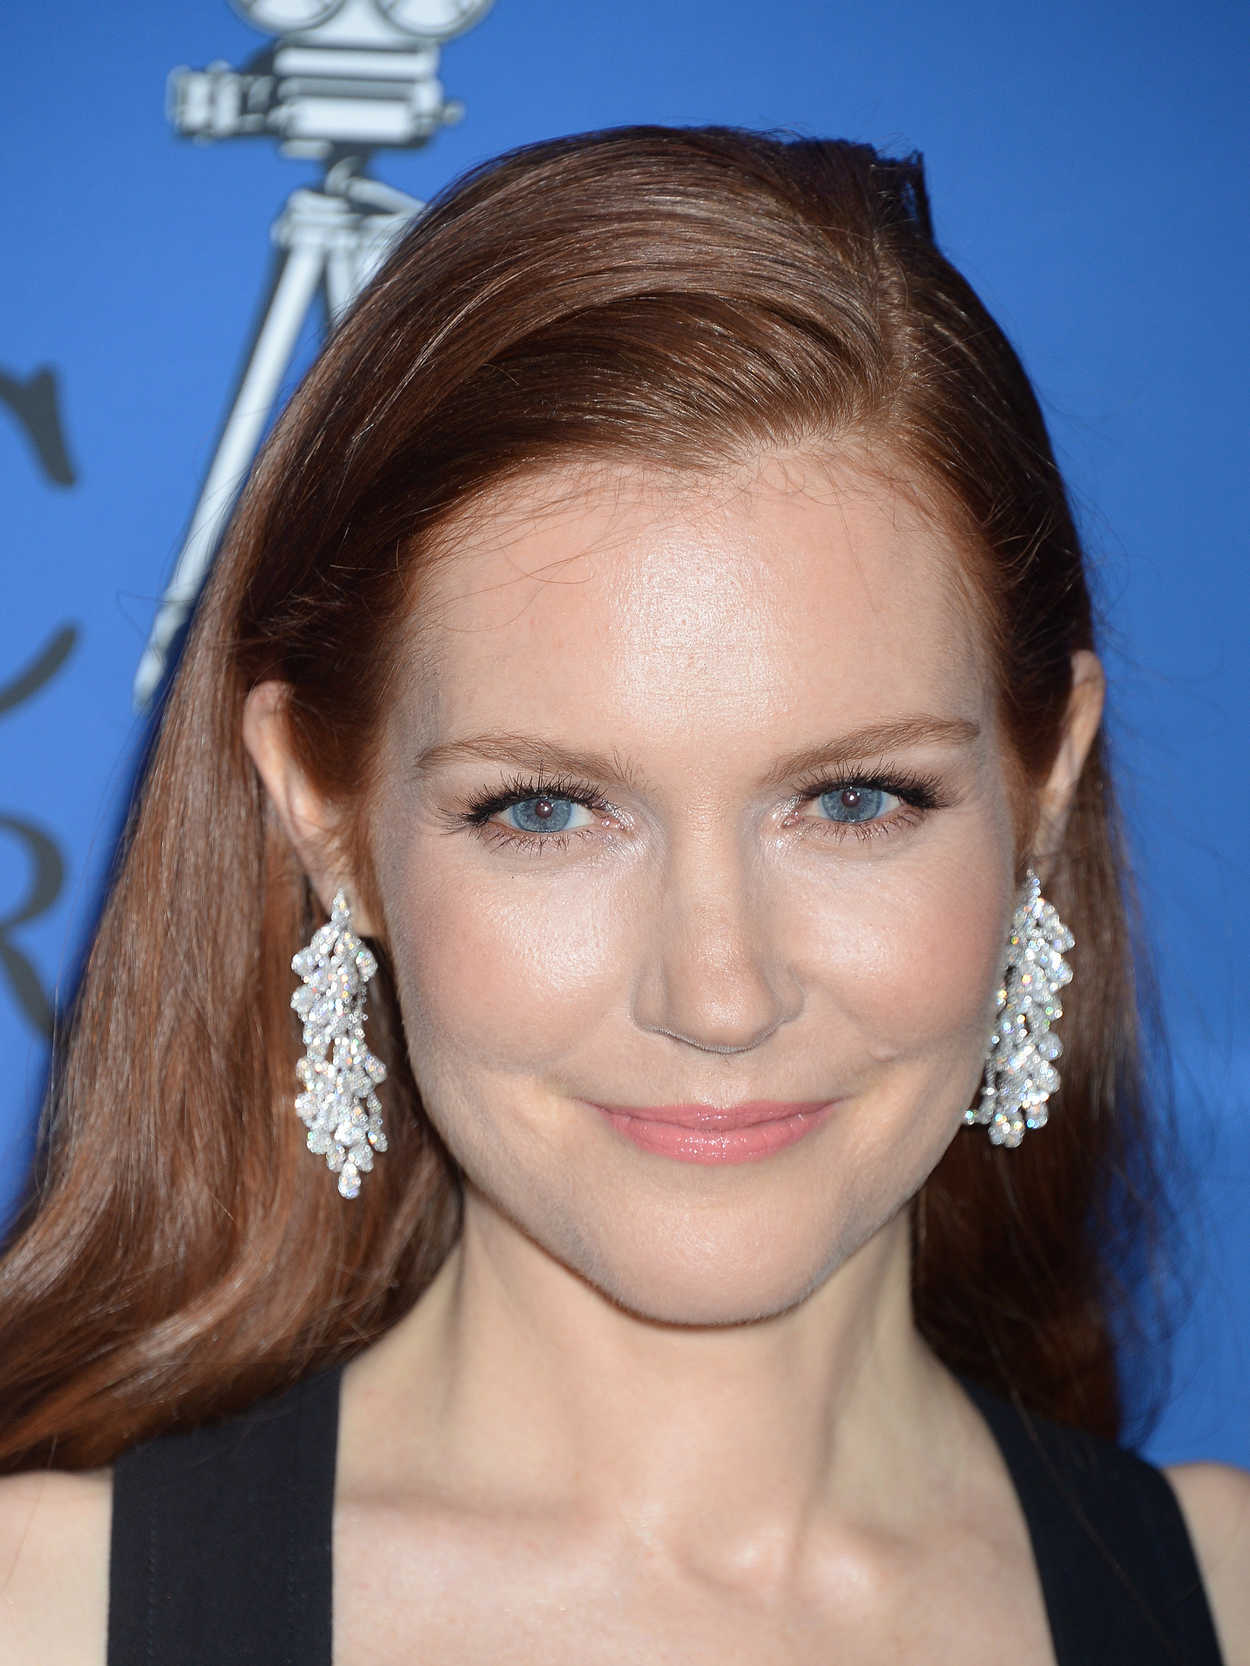 Darby Stanchfield Nude Photos 22